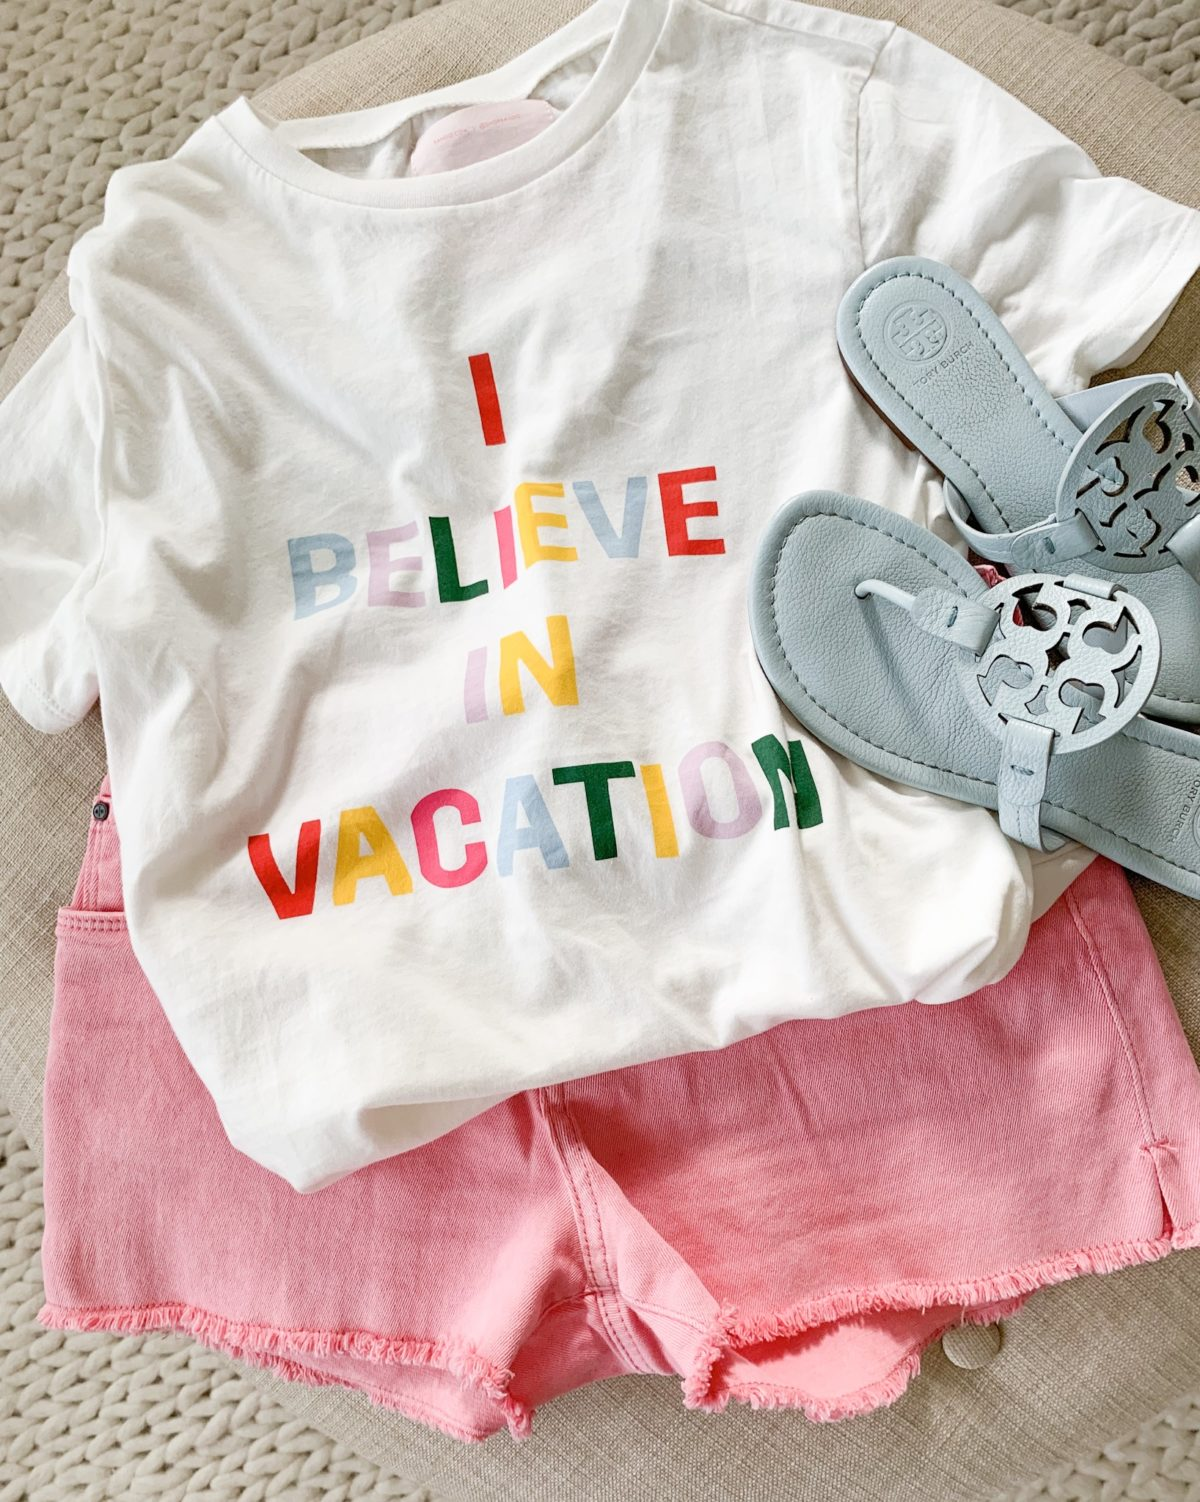 vacation tee and pink shorts